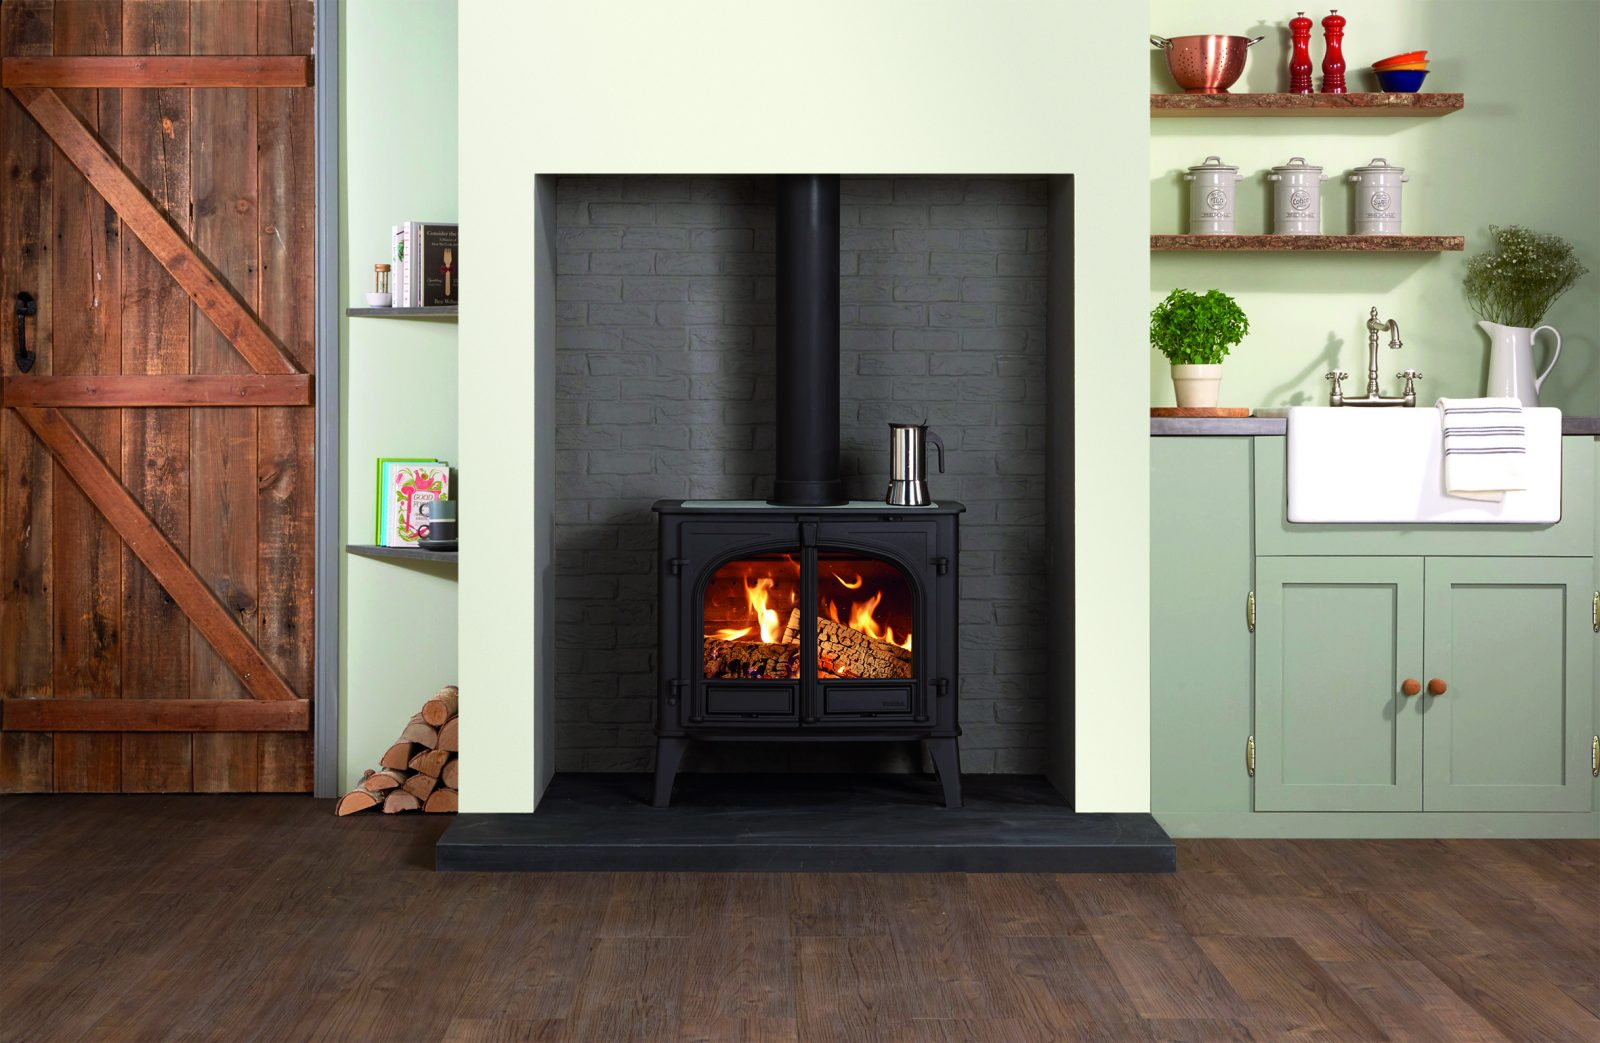 Stovax Stockton 11 Single Door Wood Burning Cook Stove